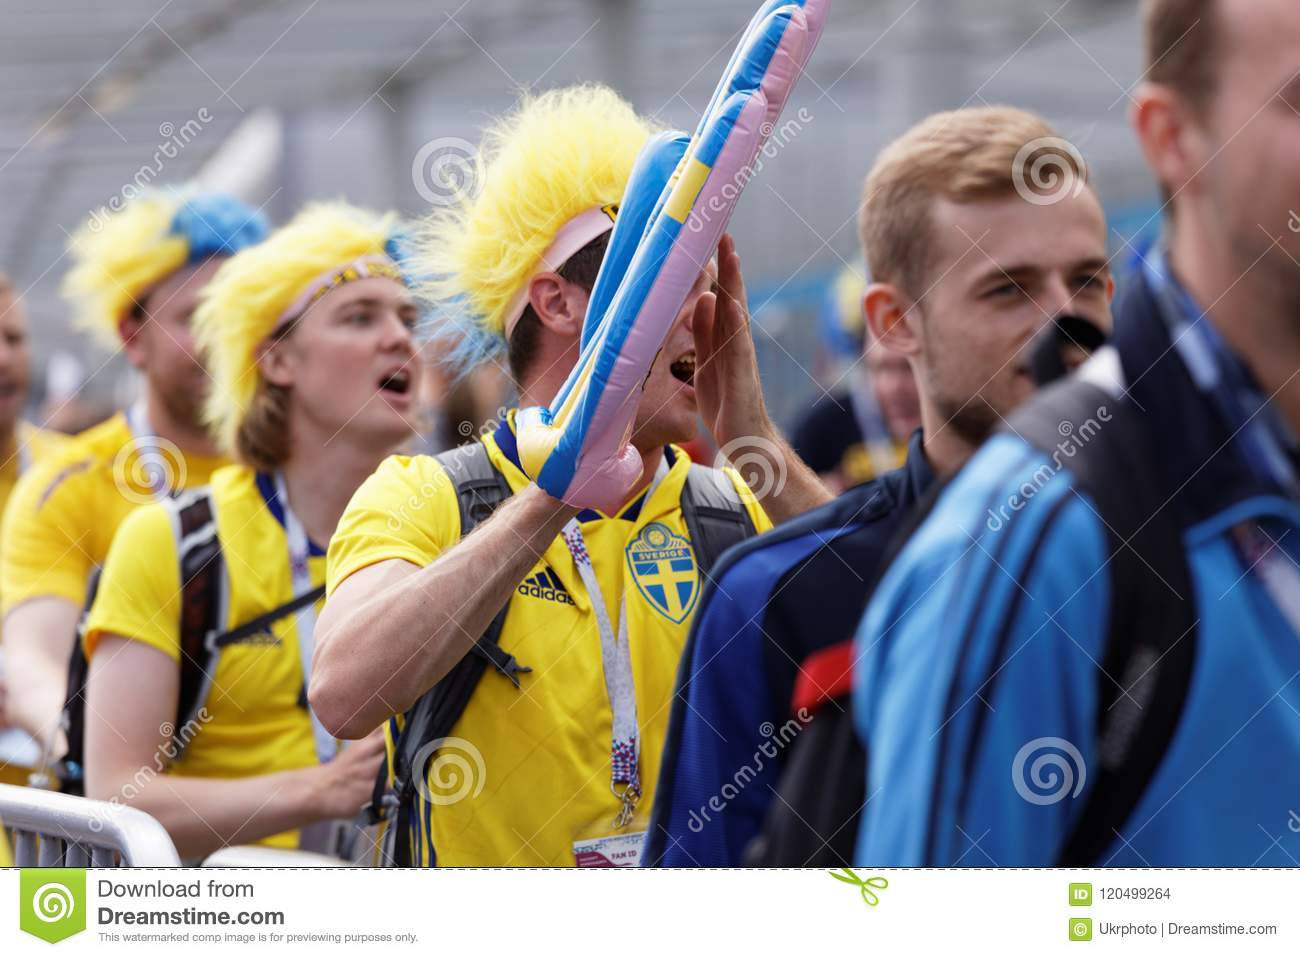 e633f20f026 St. Petersburg, Russia - July 3, 2018: Swedish football fans at Saint  Petersburg stadium before the match of FIFA World Cup 2018 Sweden vs  Switzerland.